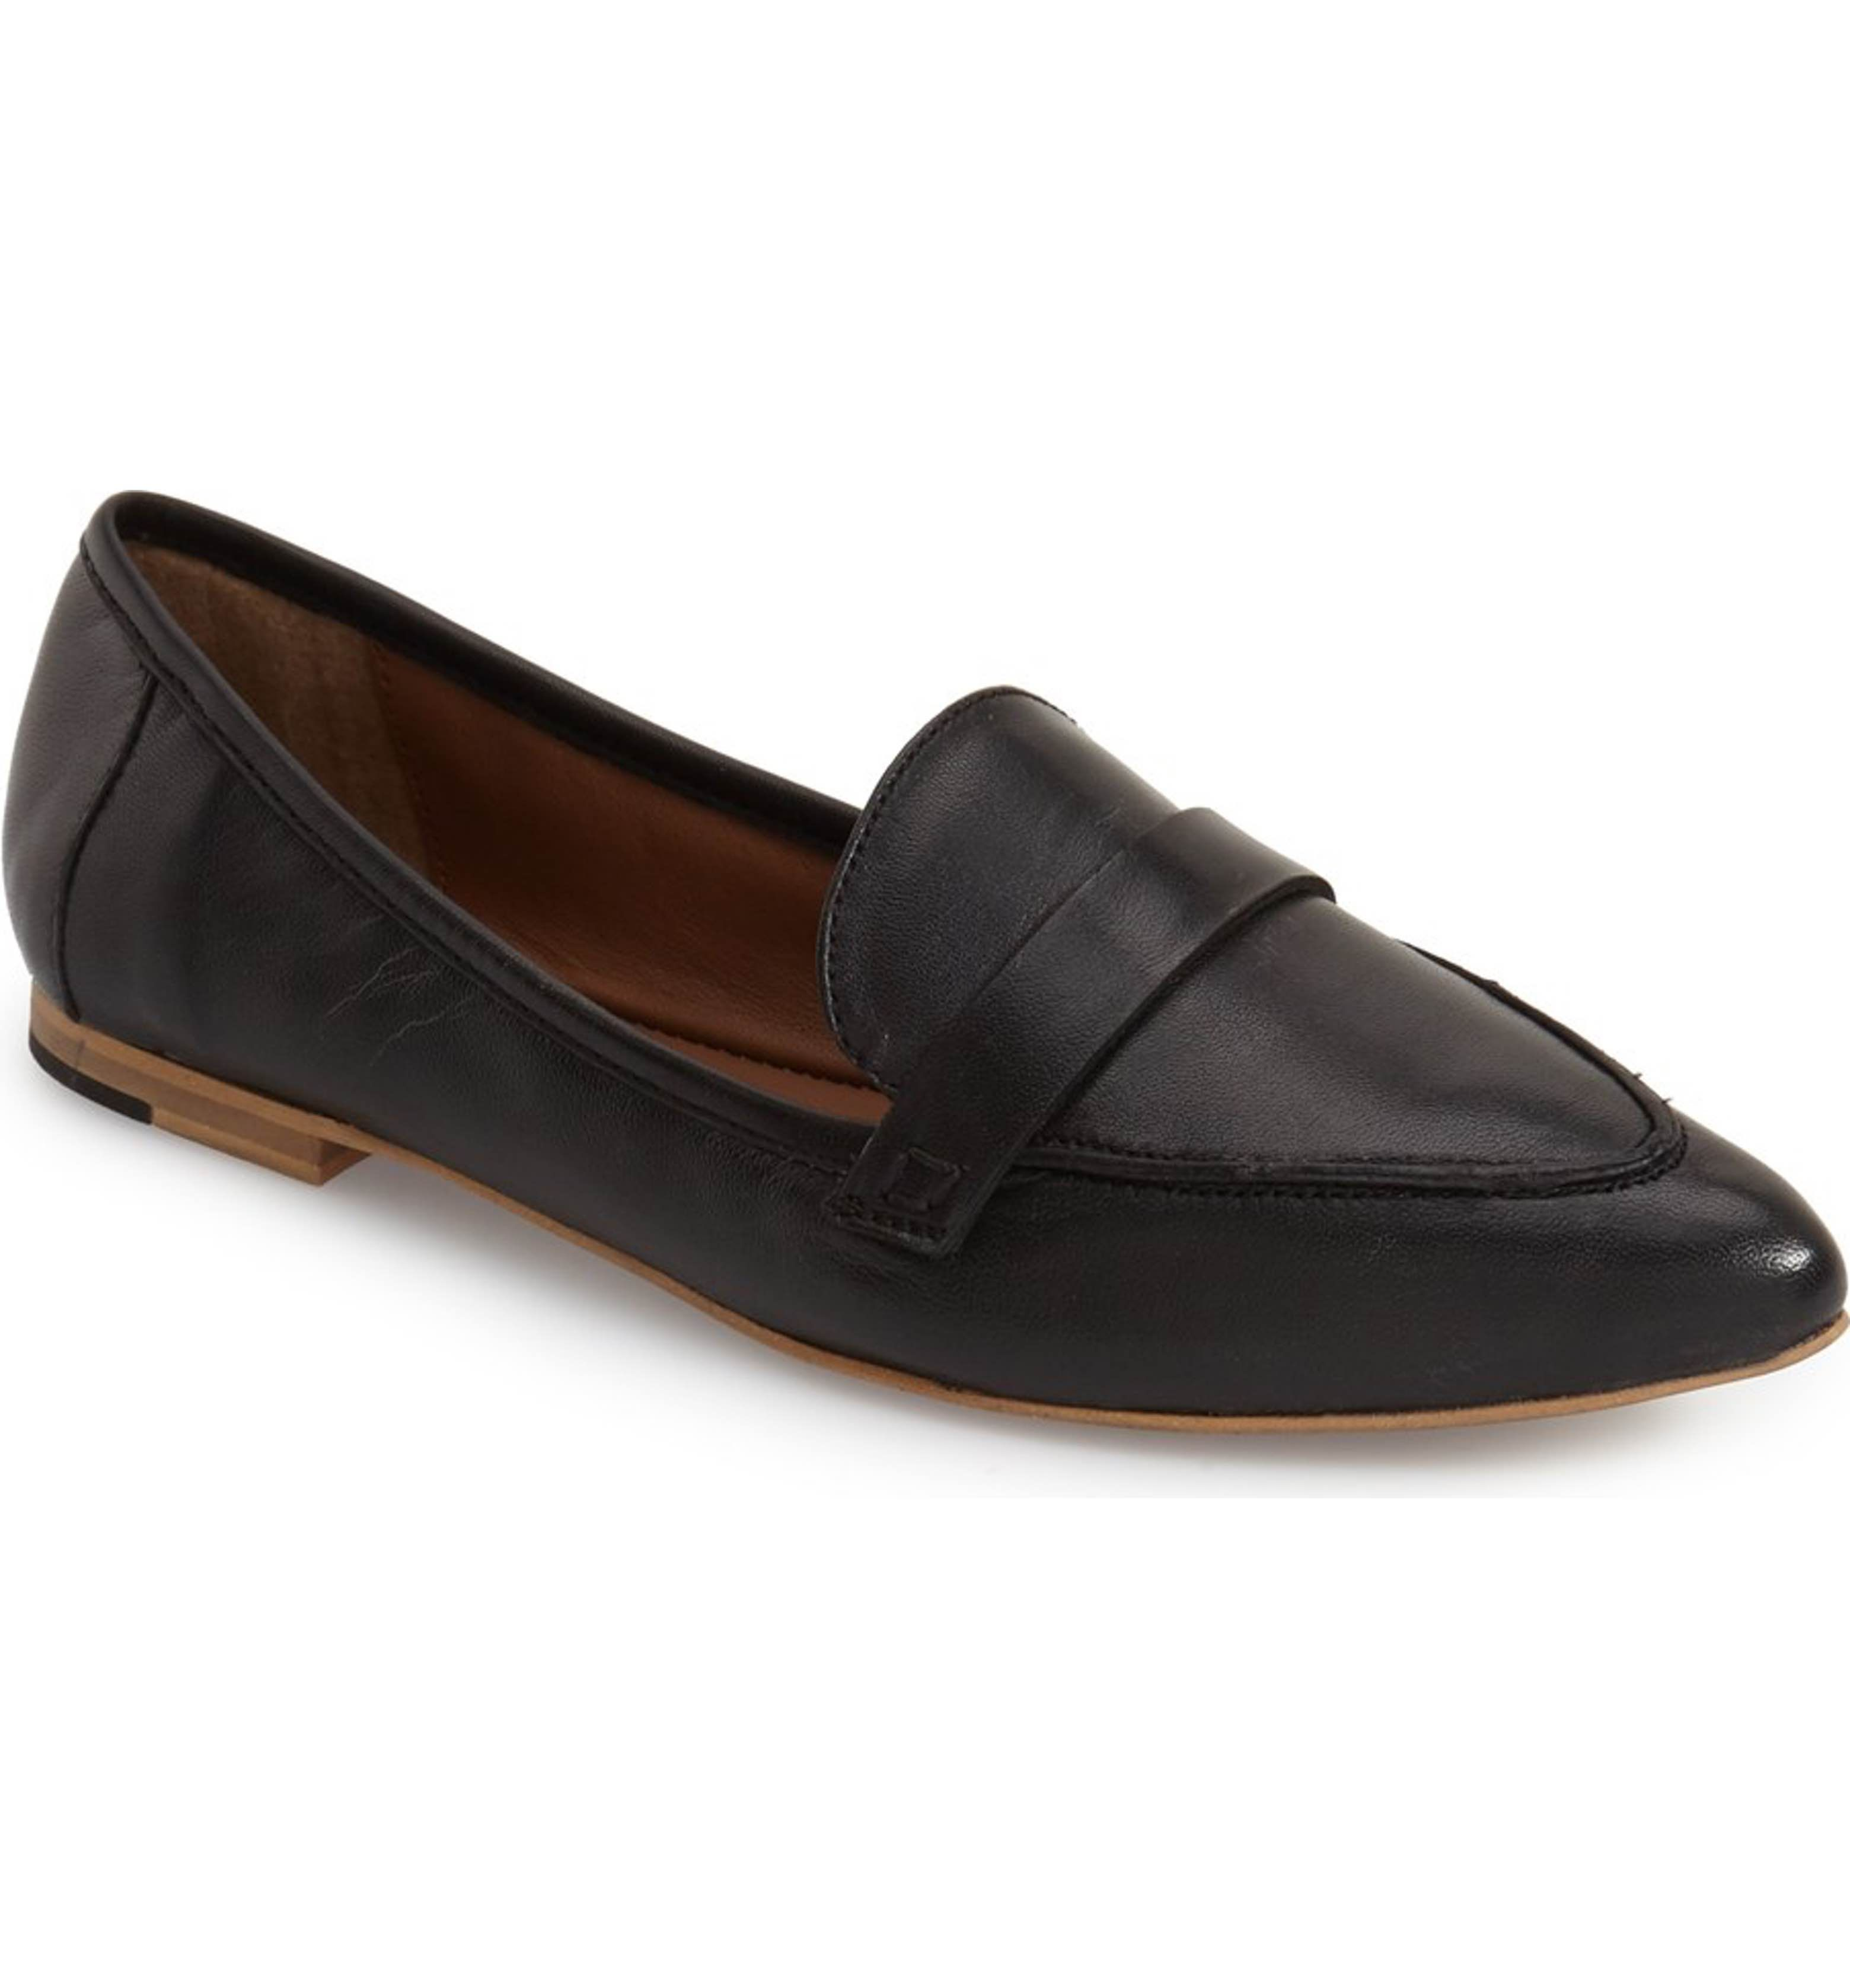 a685e35dfd3 Main Image - Vince Camuto Maita Pointy Toe Flat (Women) (Nordstrom  Exclusive)